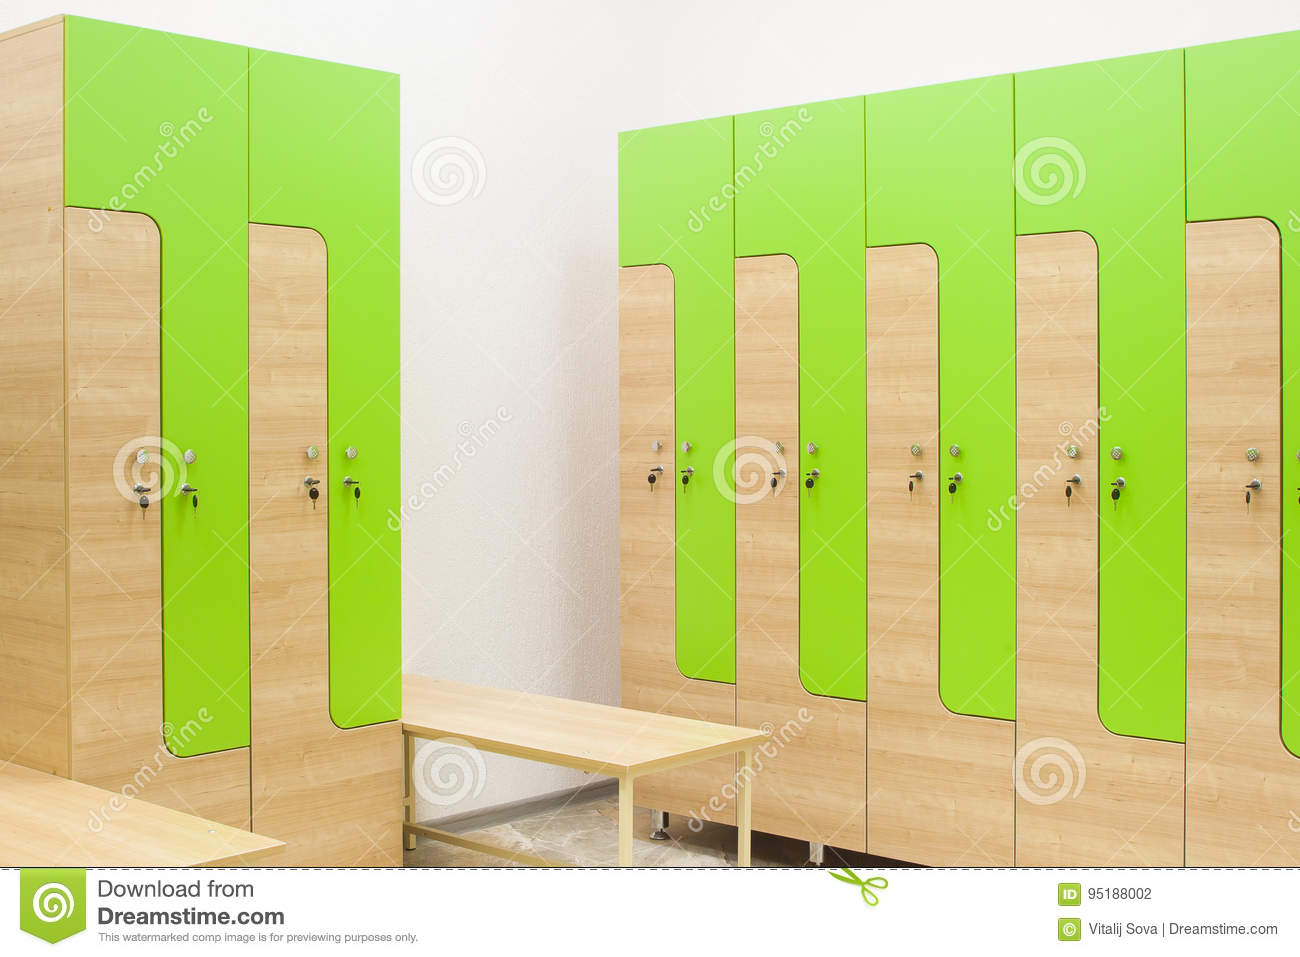 Strange Wardrobe In The Gym And Bench Stock Photo Image Of Design Beatyapartments Chair Design Images Beatyapartmentscom